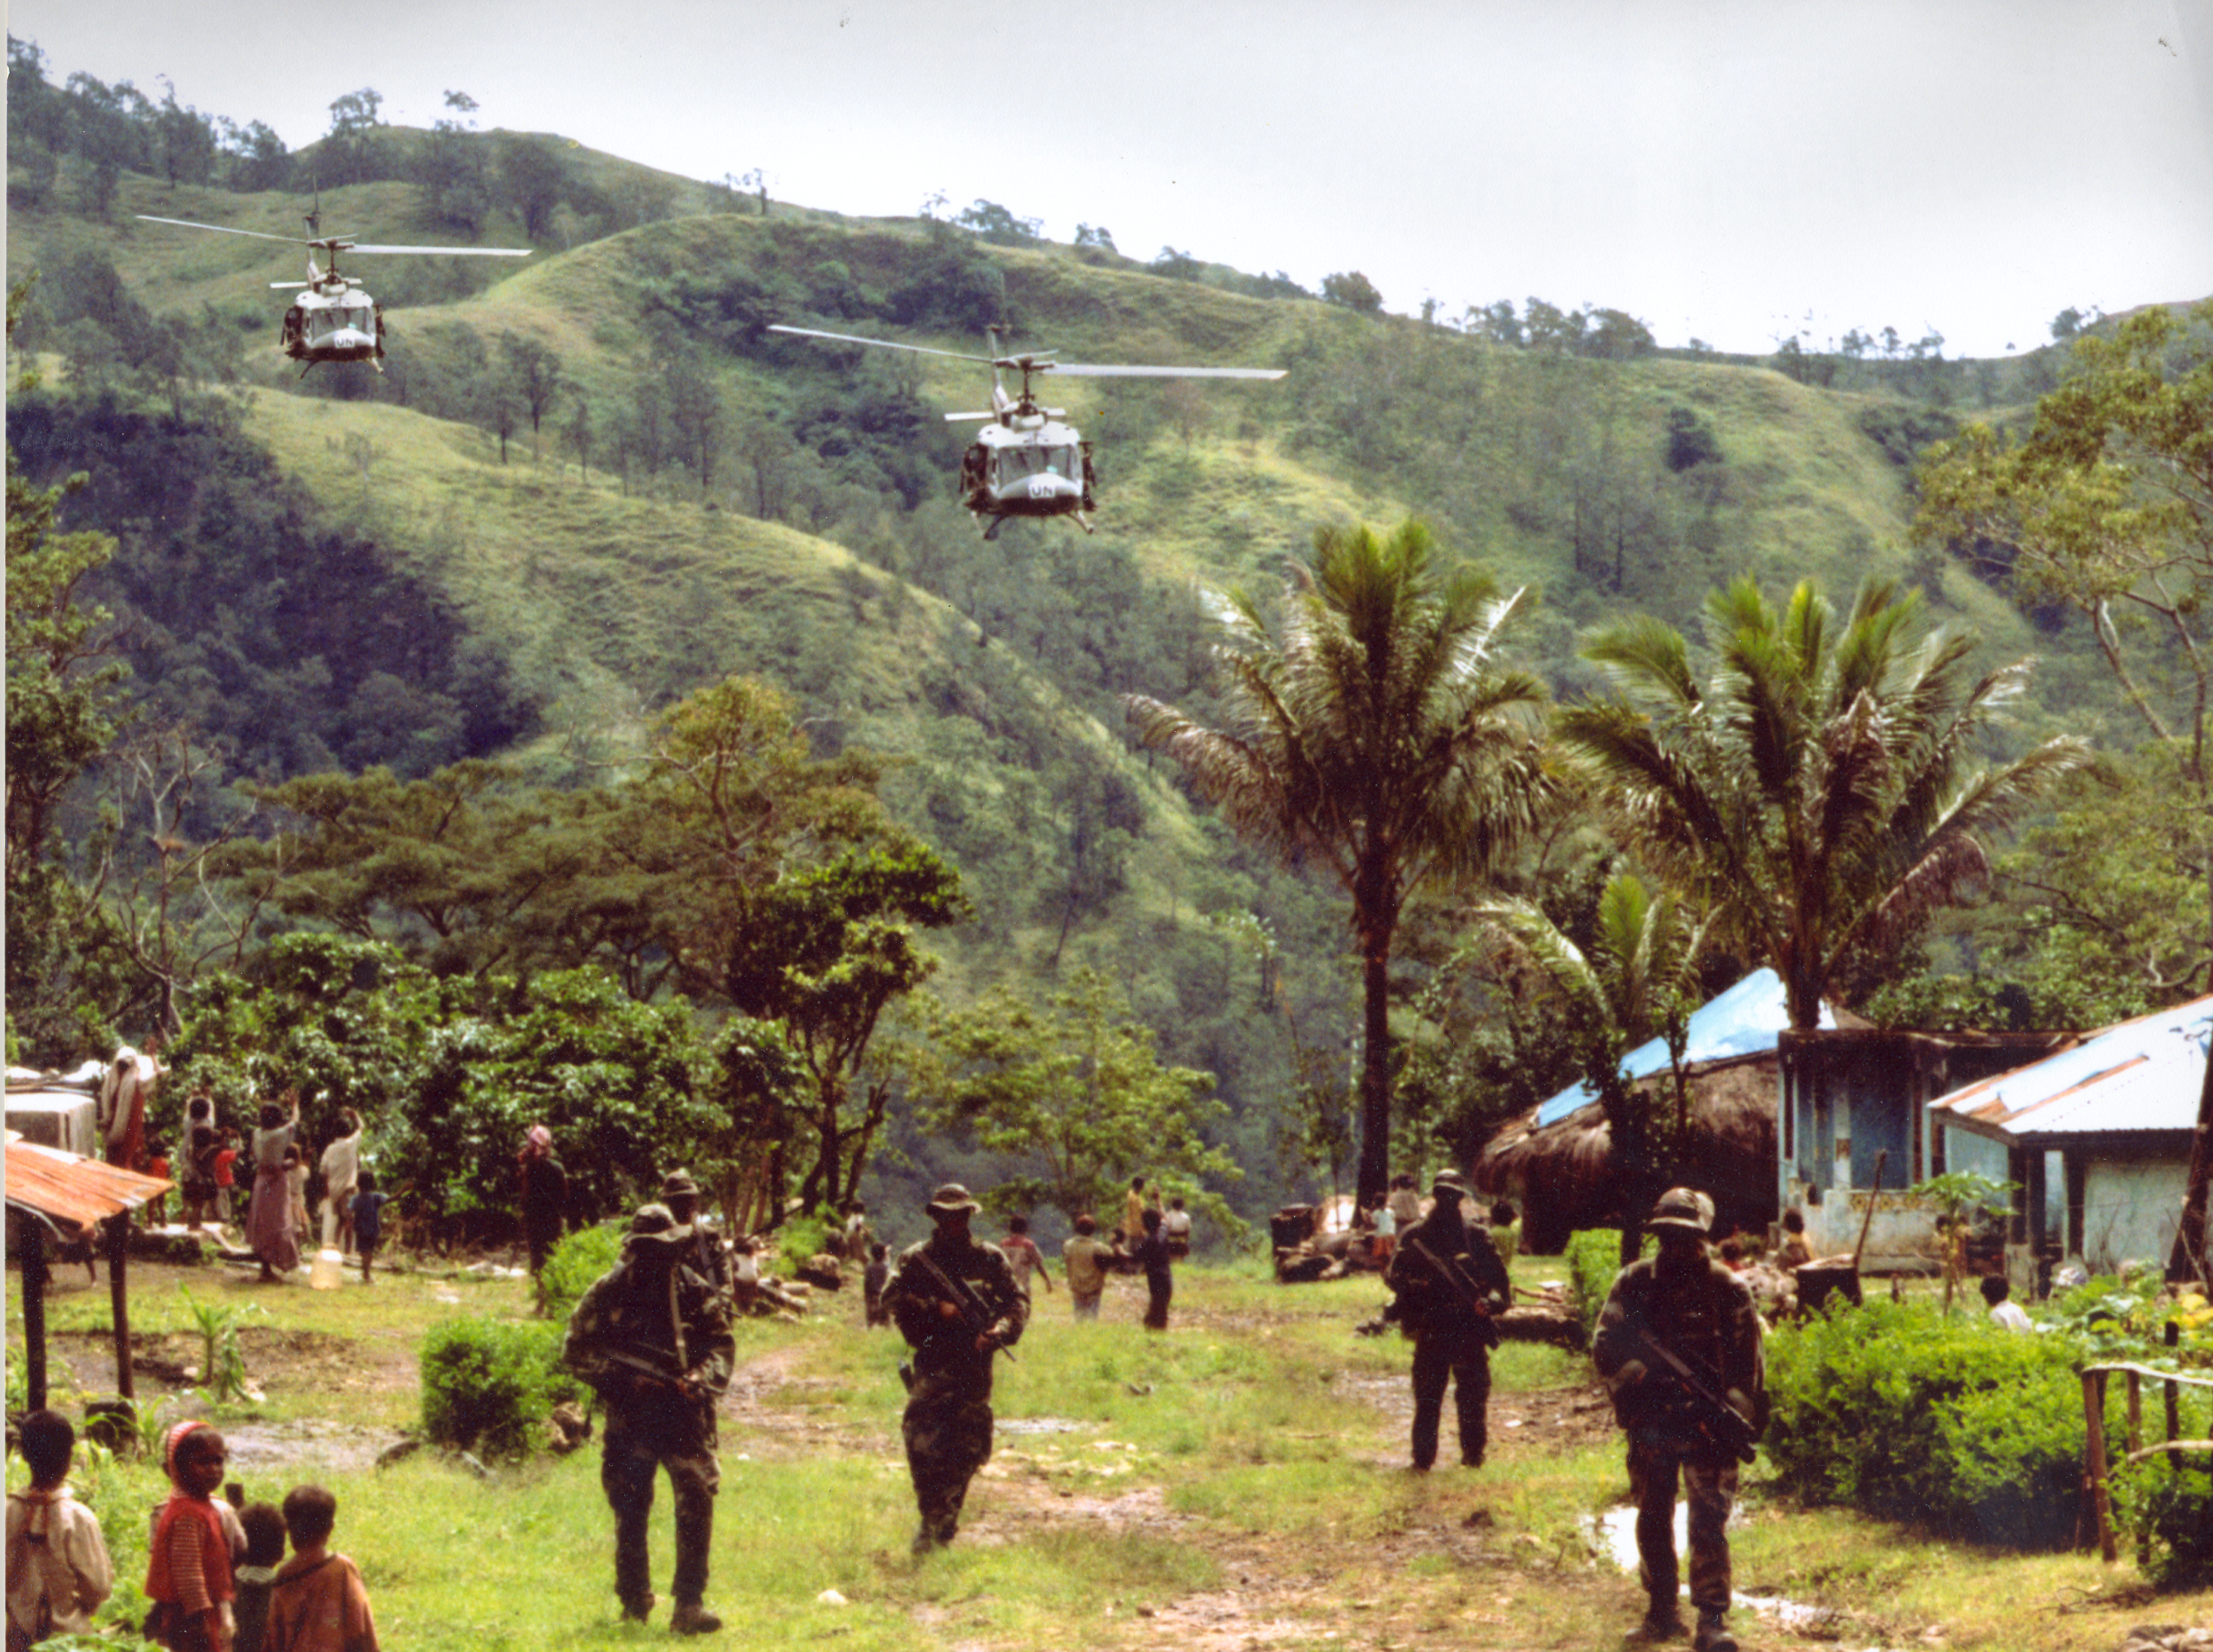 UN peacekeepers in East Timor. By the Irish Defense Forces.